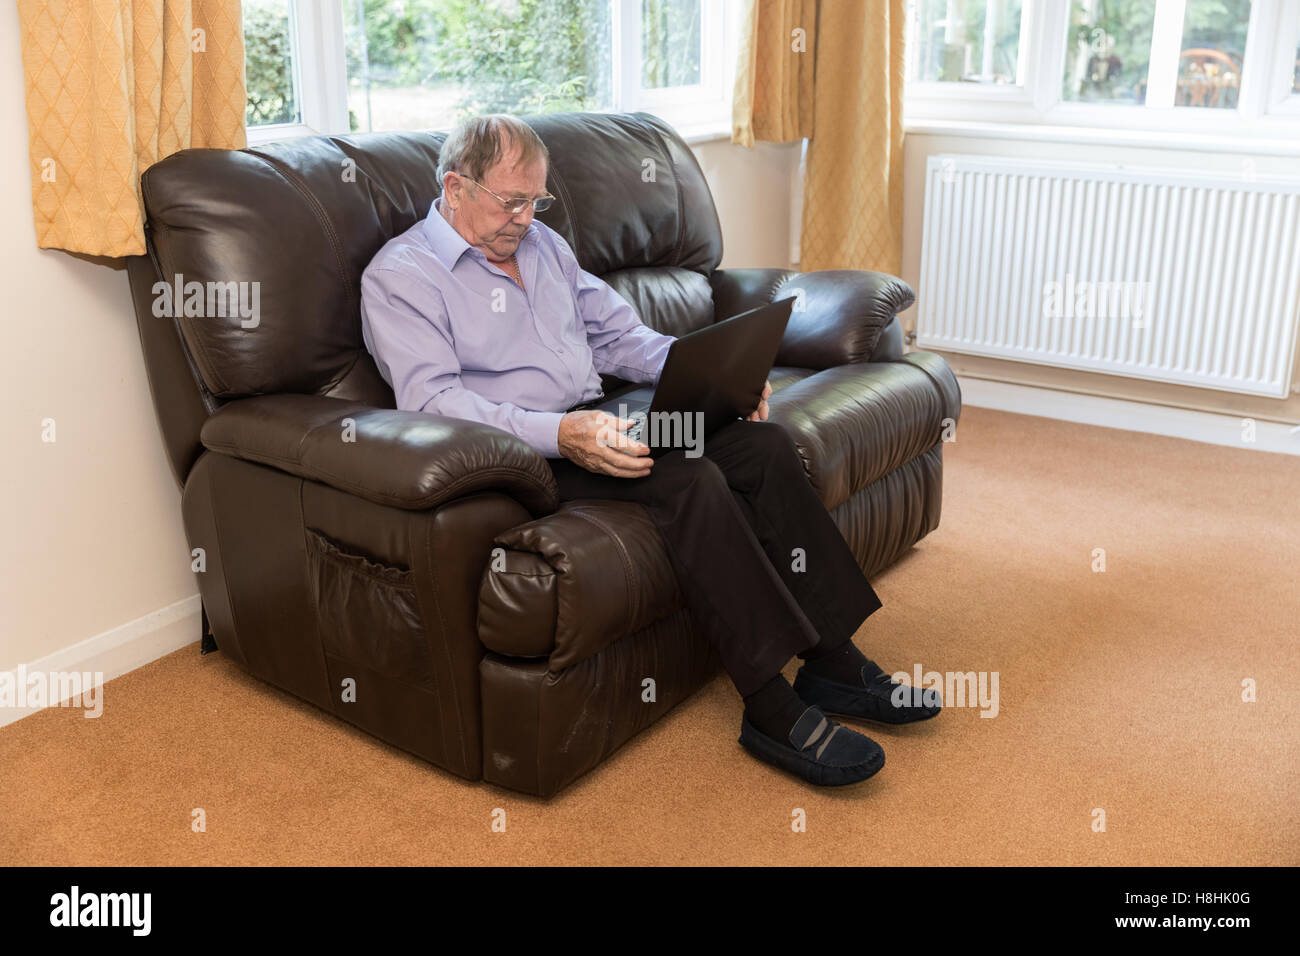 Old Man Sat On A Leather Sofa In His Lounge Wearing